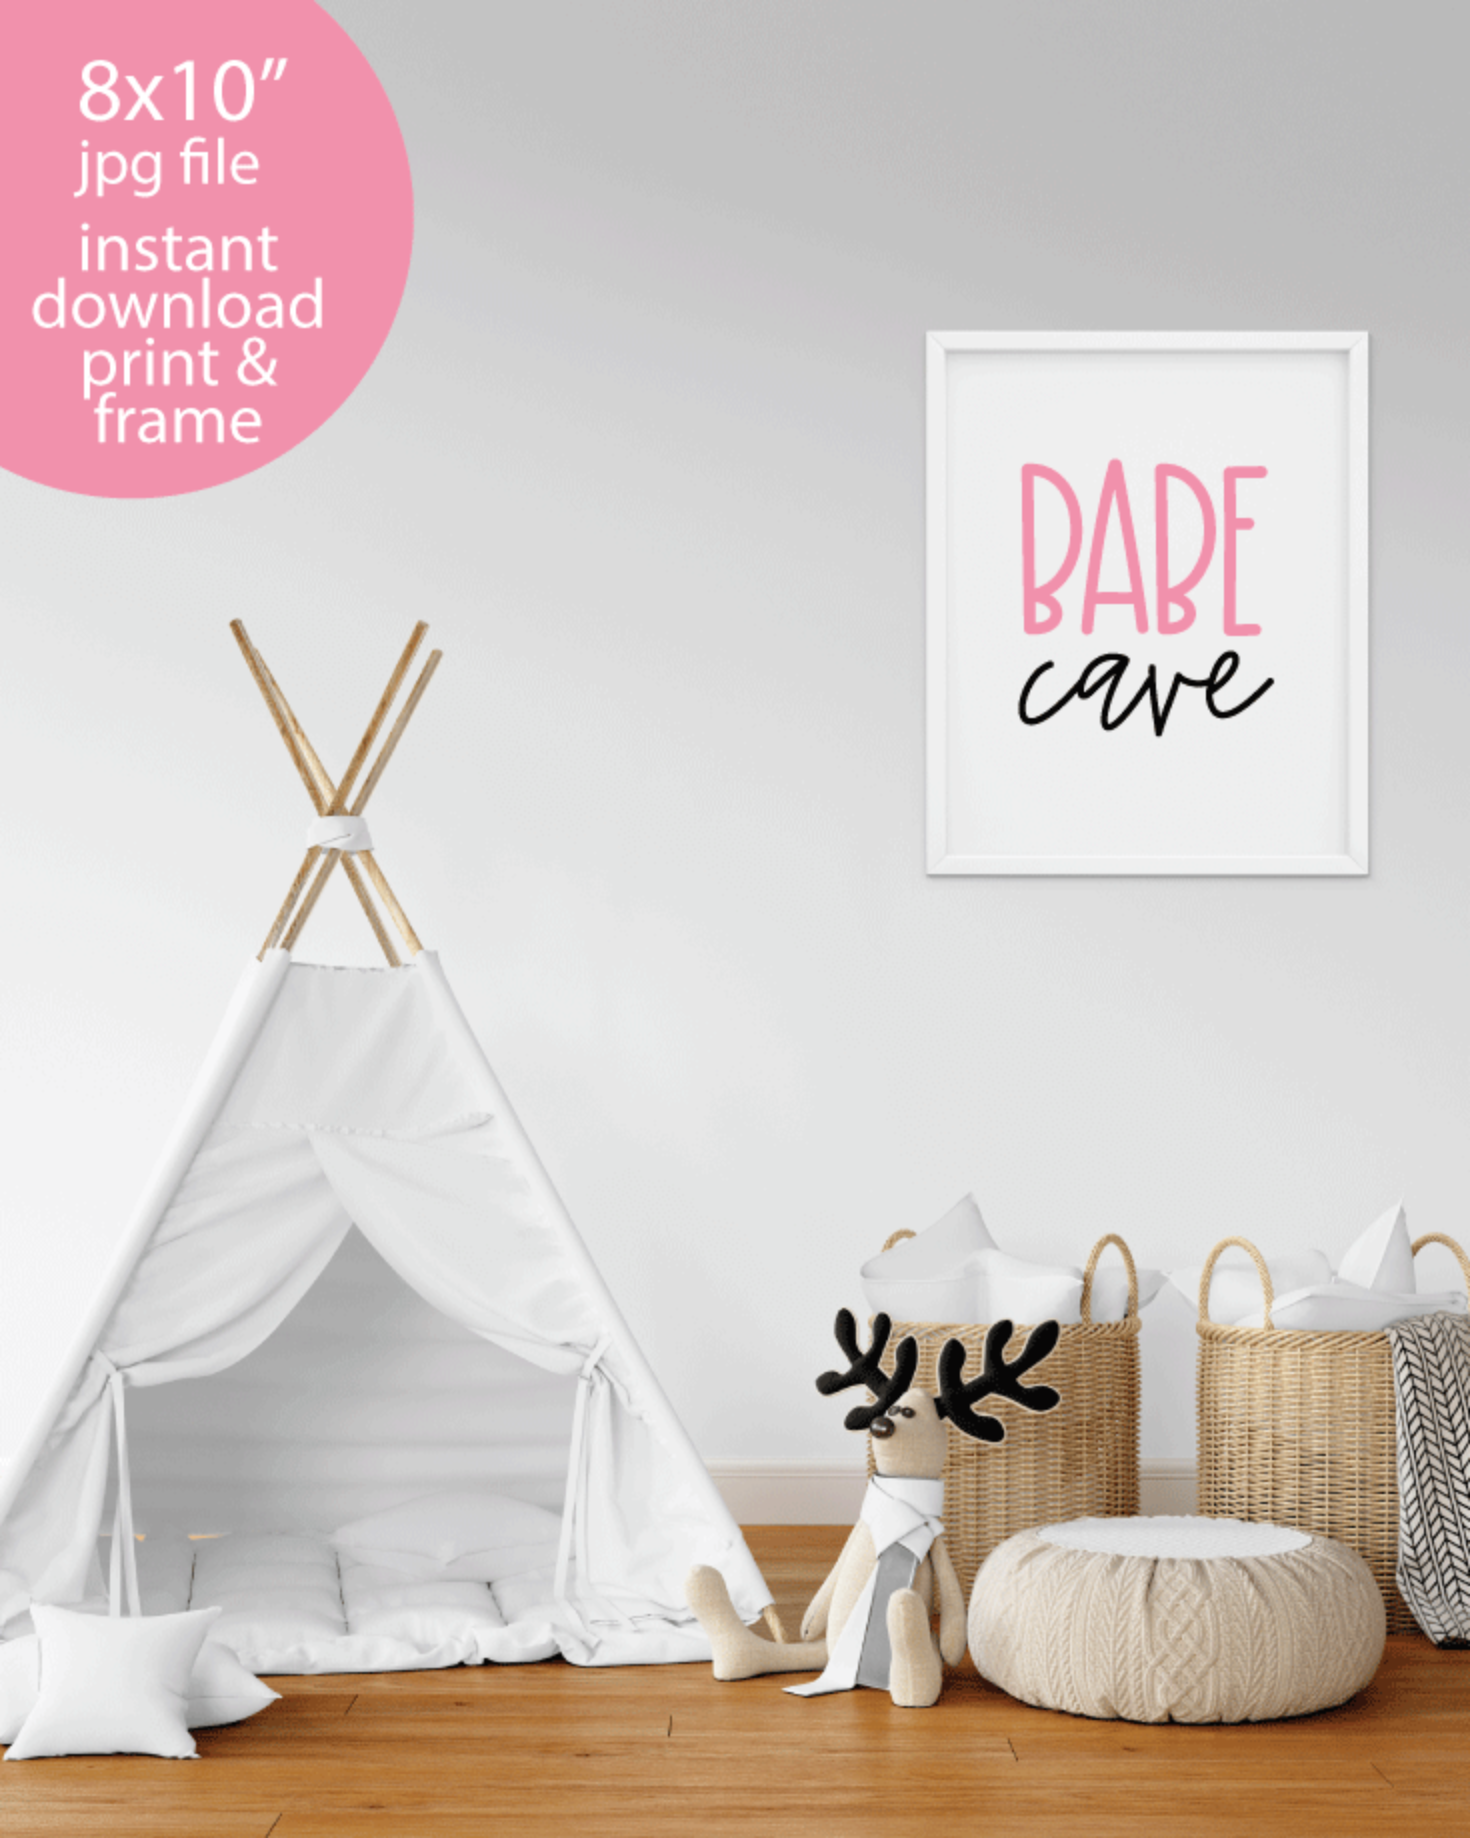 "Printable Babe Cave, 8x10"" Wall Art Sign - Girl Playroom or Bedroom Sign"